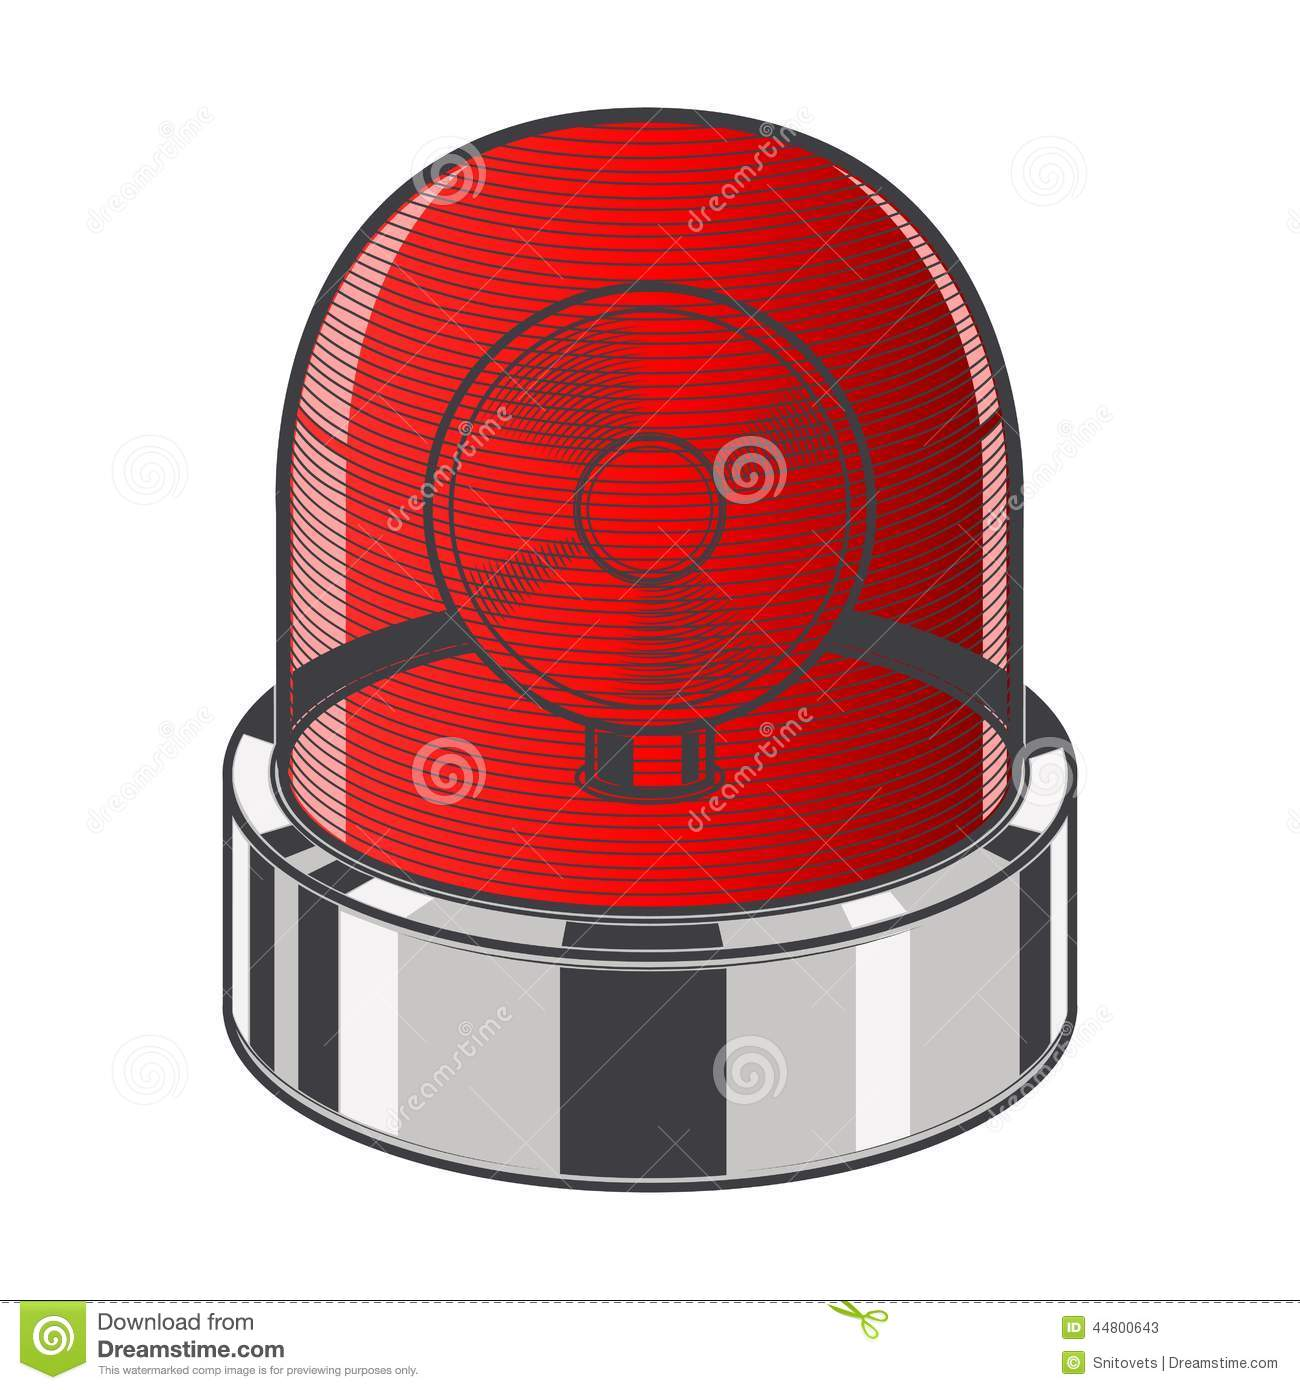 Introducing The Zeta Reflective Beam Smoke Detector together with East Raya Gardens Pasig City besides Toys For The Big Boys Petron Supercars 2017 Toy Car Collection additionally 407784 Toyota Camry C Button Flashing Blinking Repair 13 99 Instead 1200 A moreover Draw Yourself As SCP Meme 544598062. on fire alarm red light